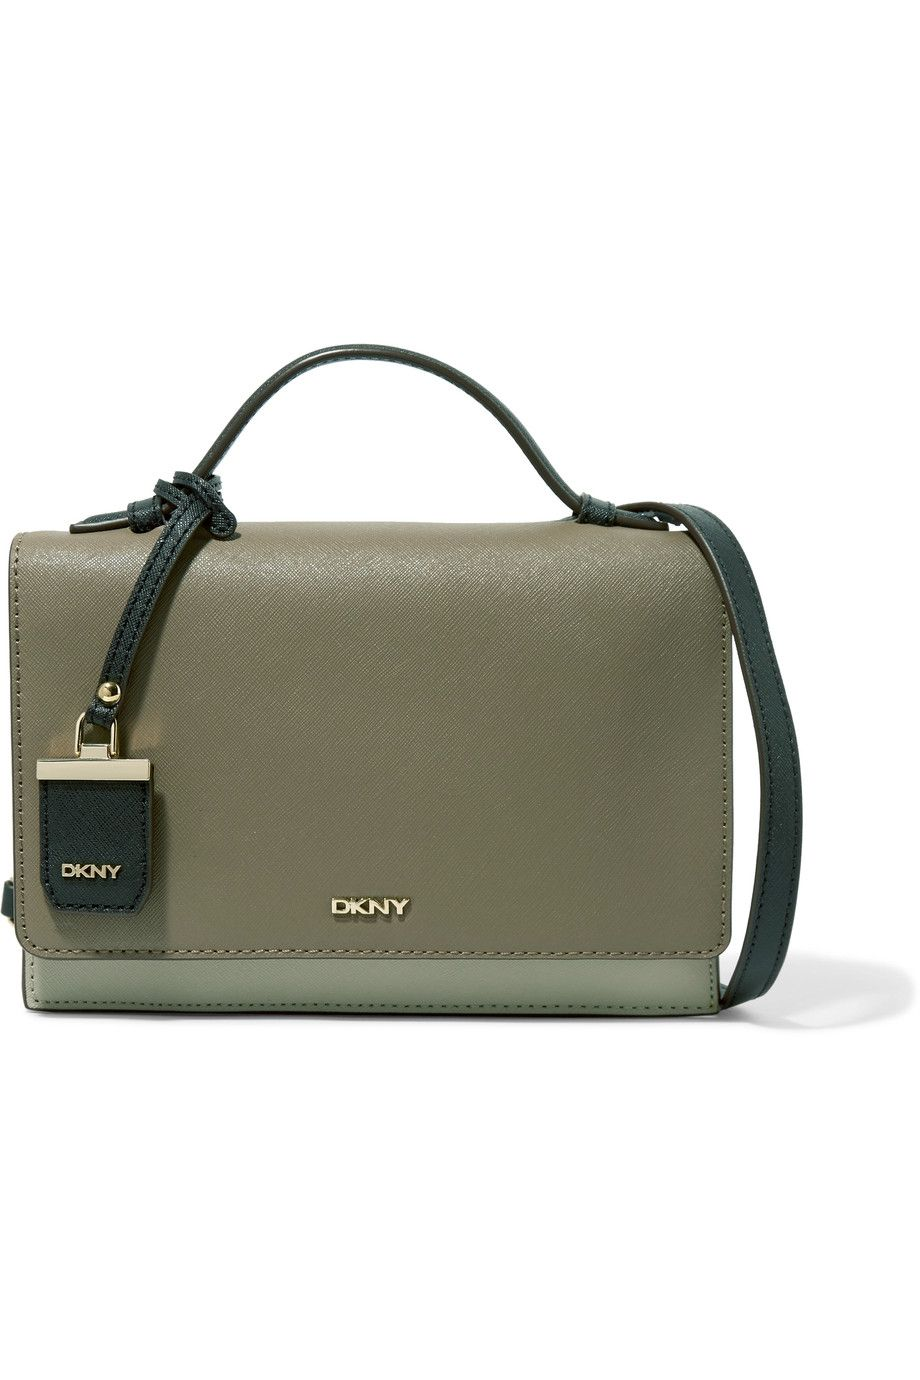 DKNY .  dkny  bags  shoulder bags  hand bags  leather    c0e1afa582628